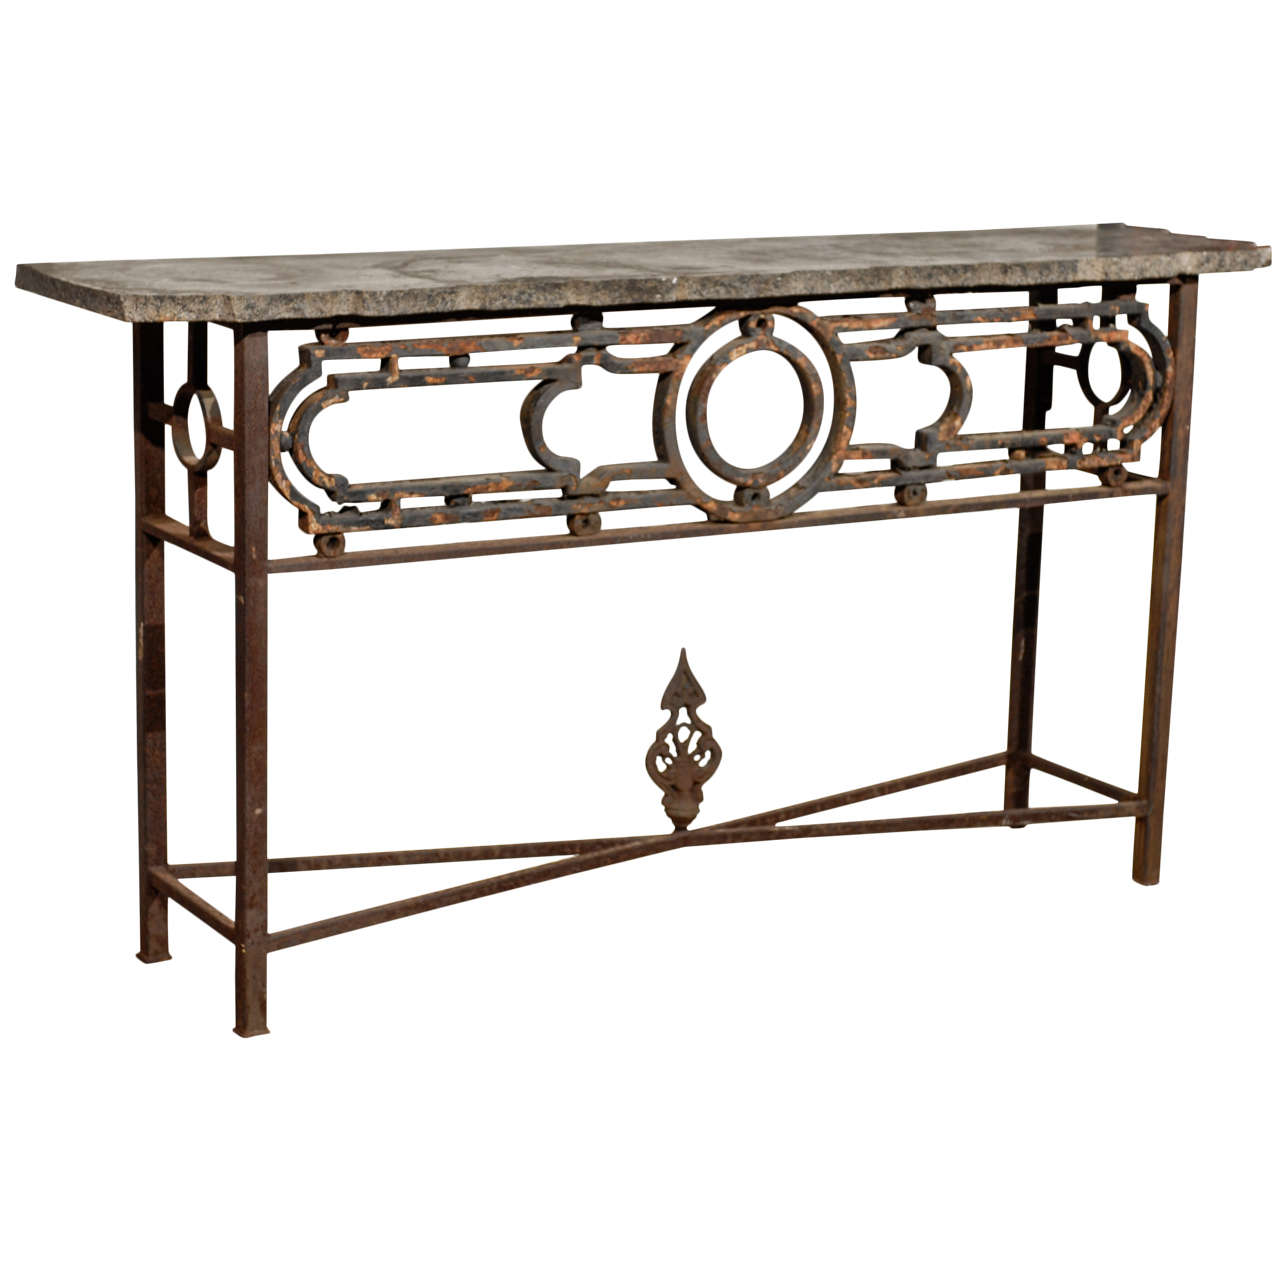 Iron Console Table : Iron Console Table For Sale at 1stdibs